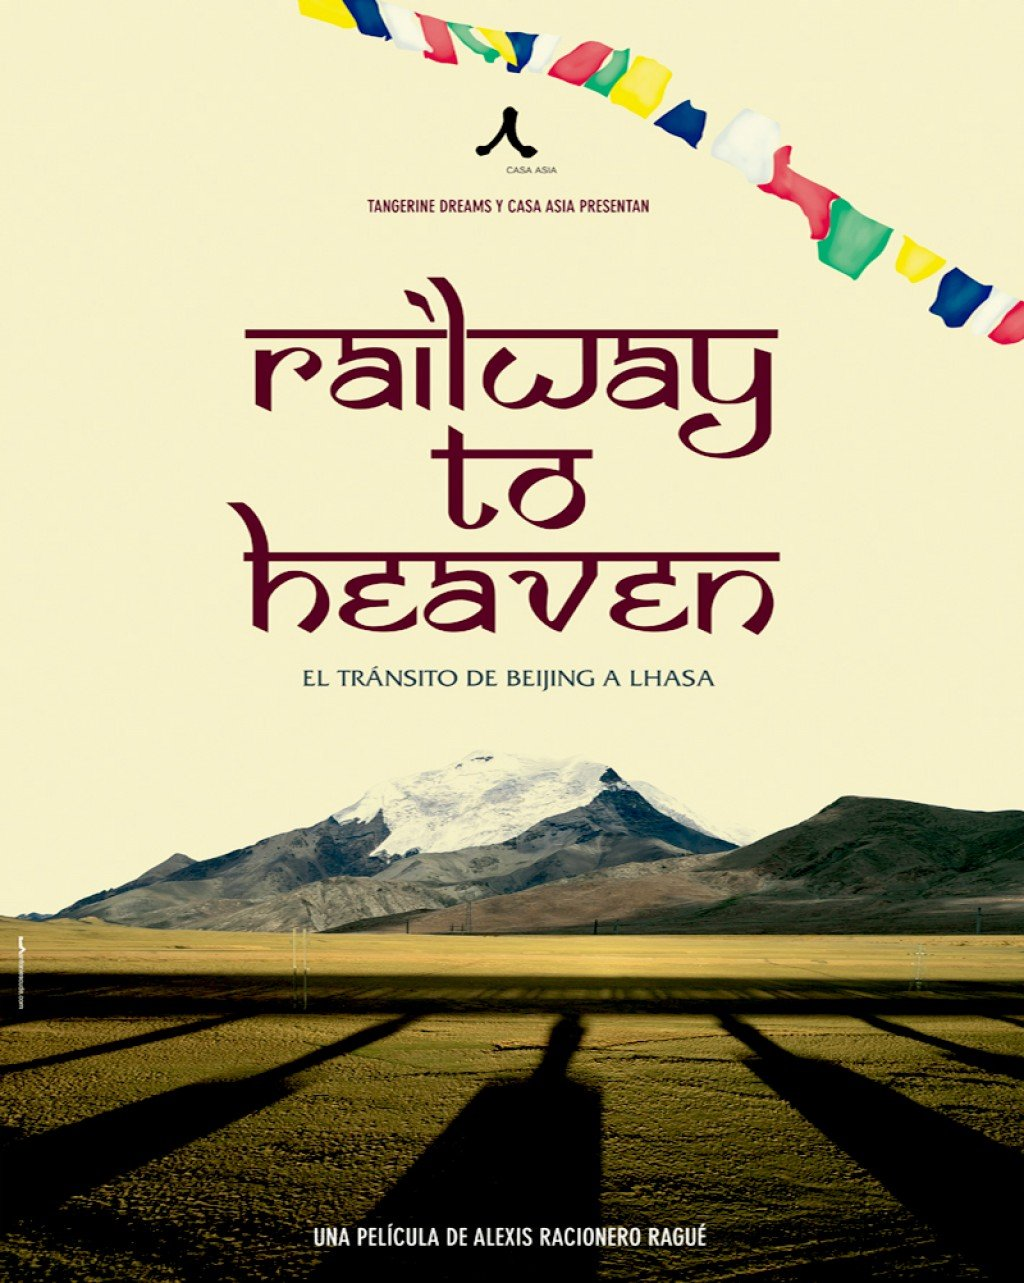 Railway to heaven